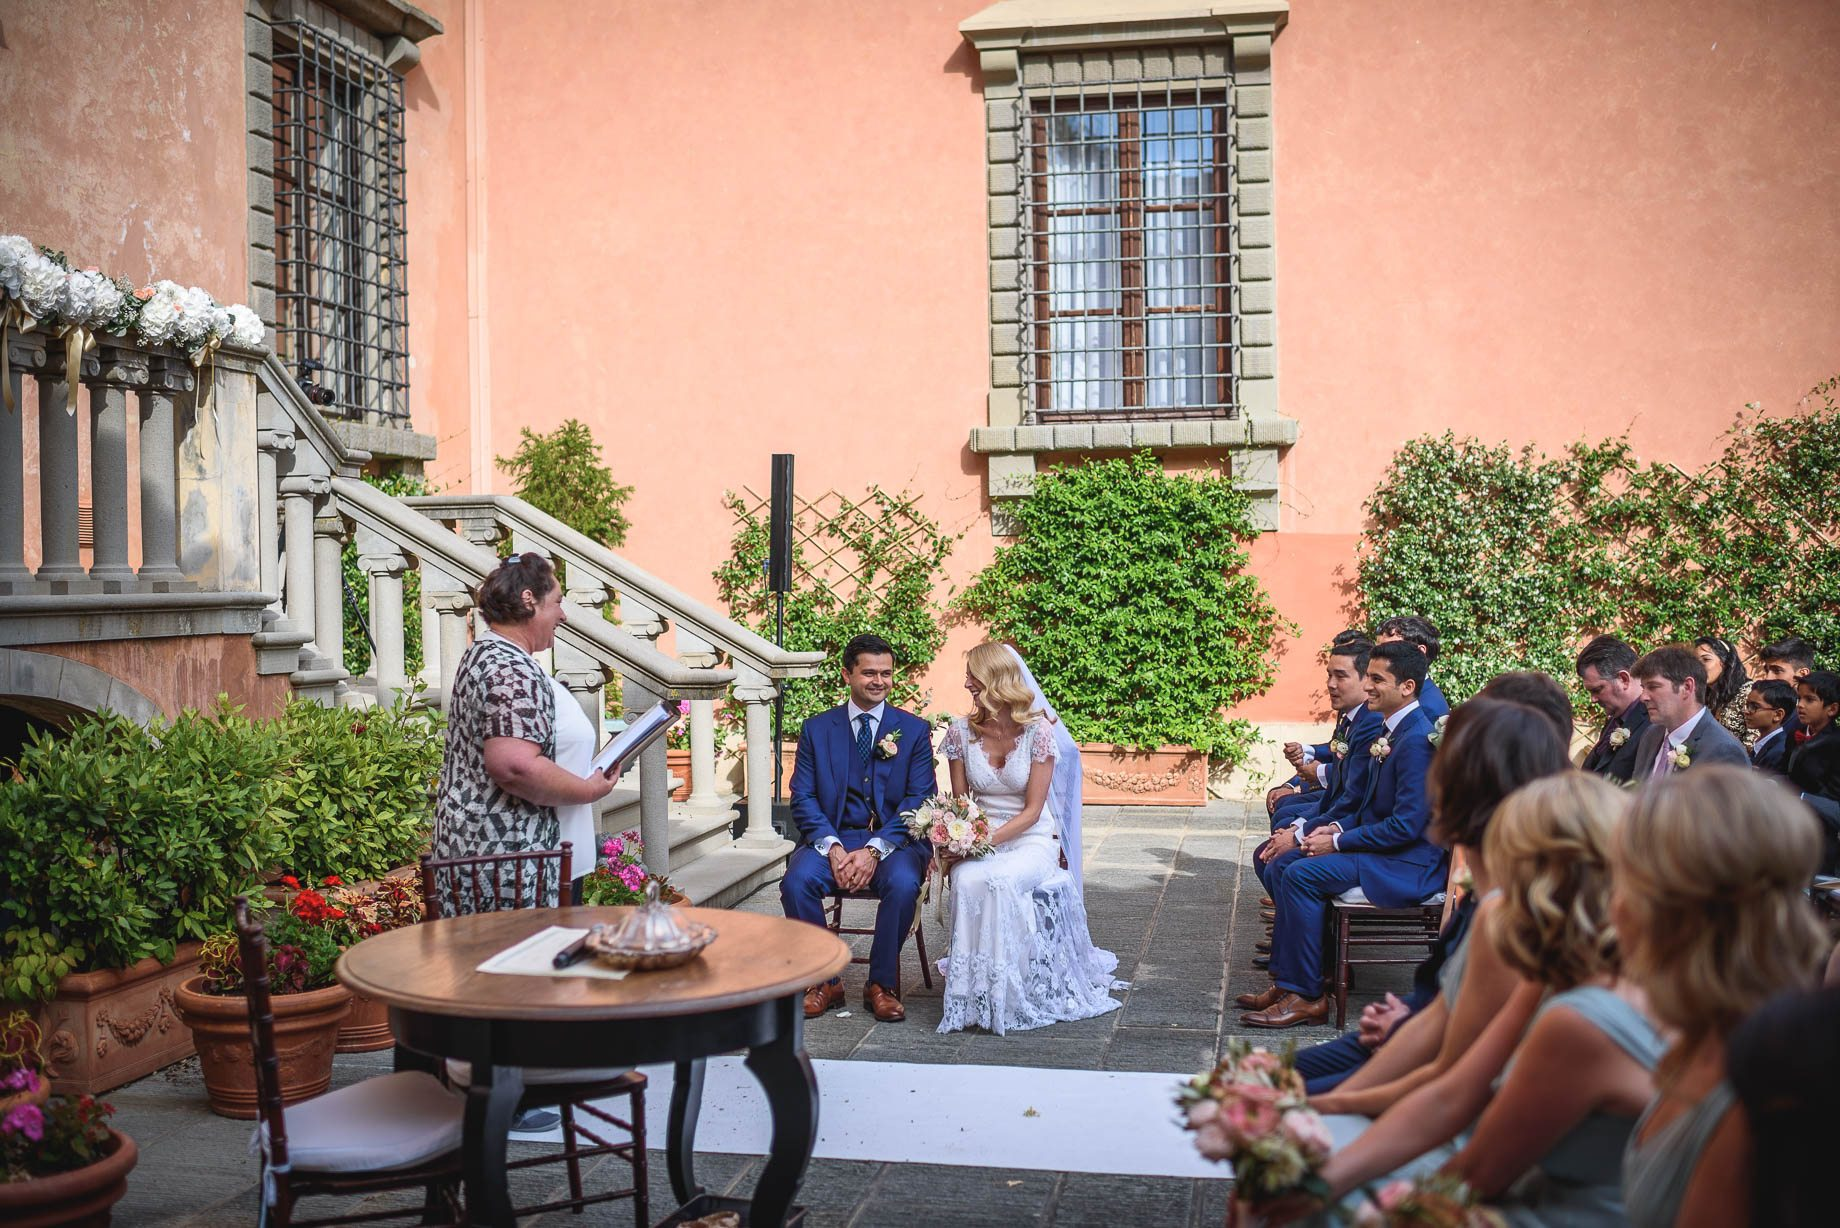 Tuscany wedding photography - Roisin and Moubin - Guy Collier Photography (107 of 251)